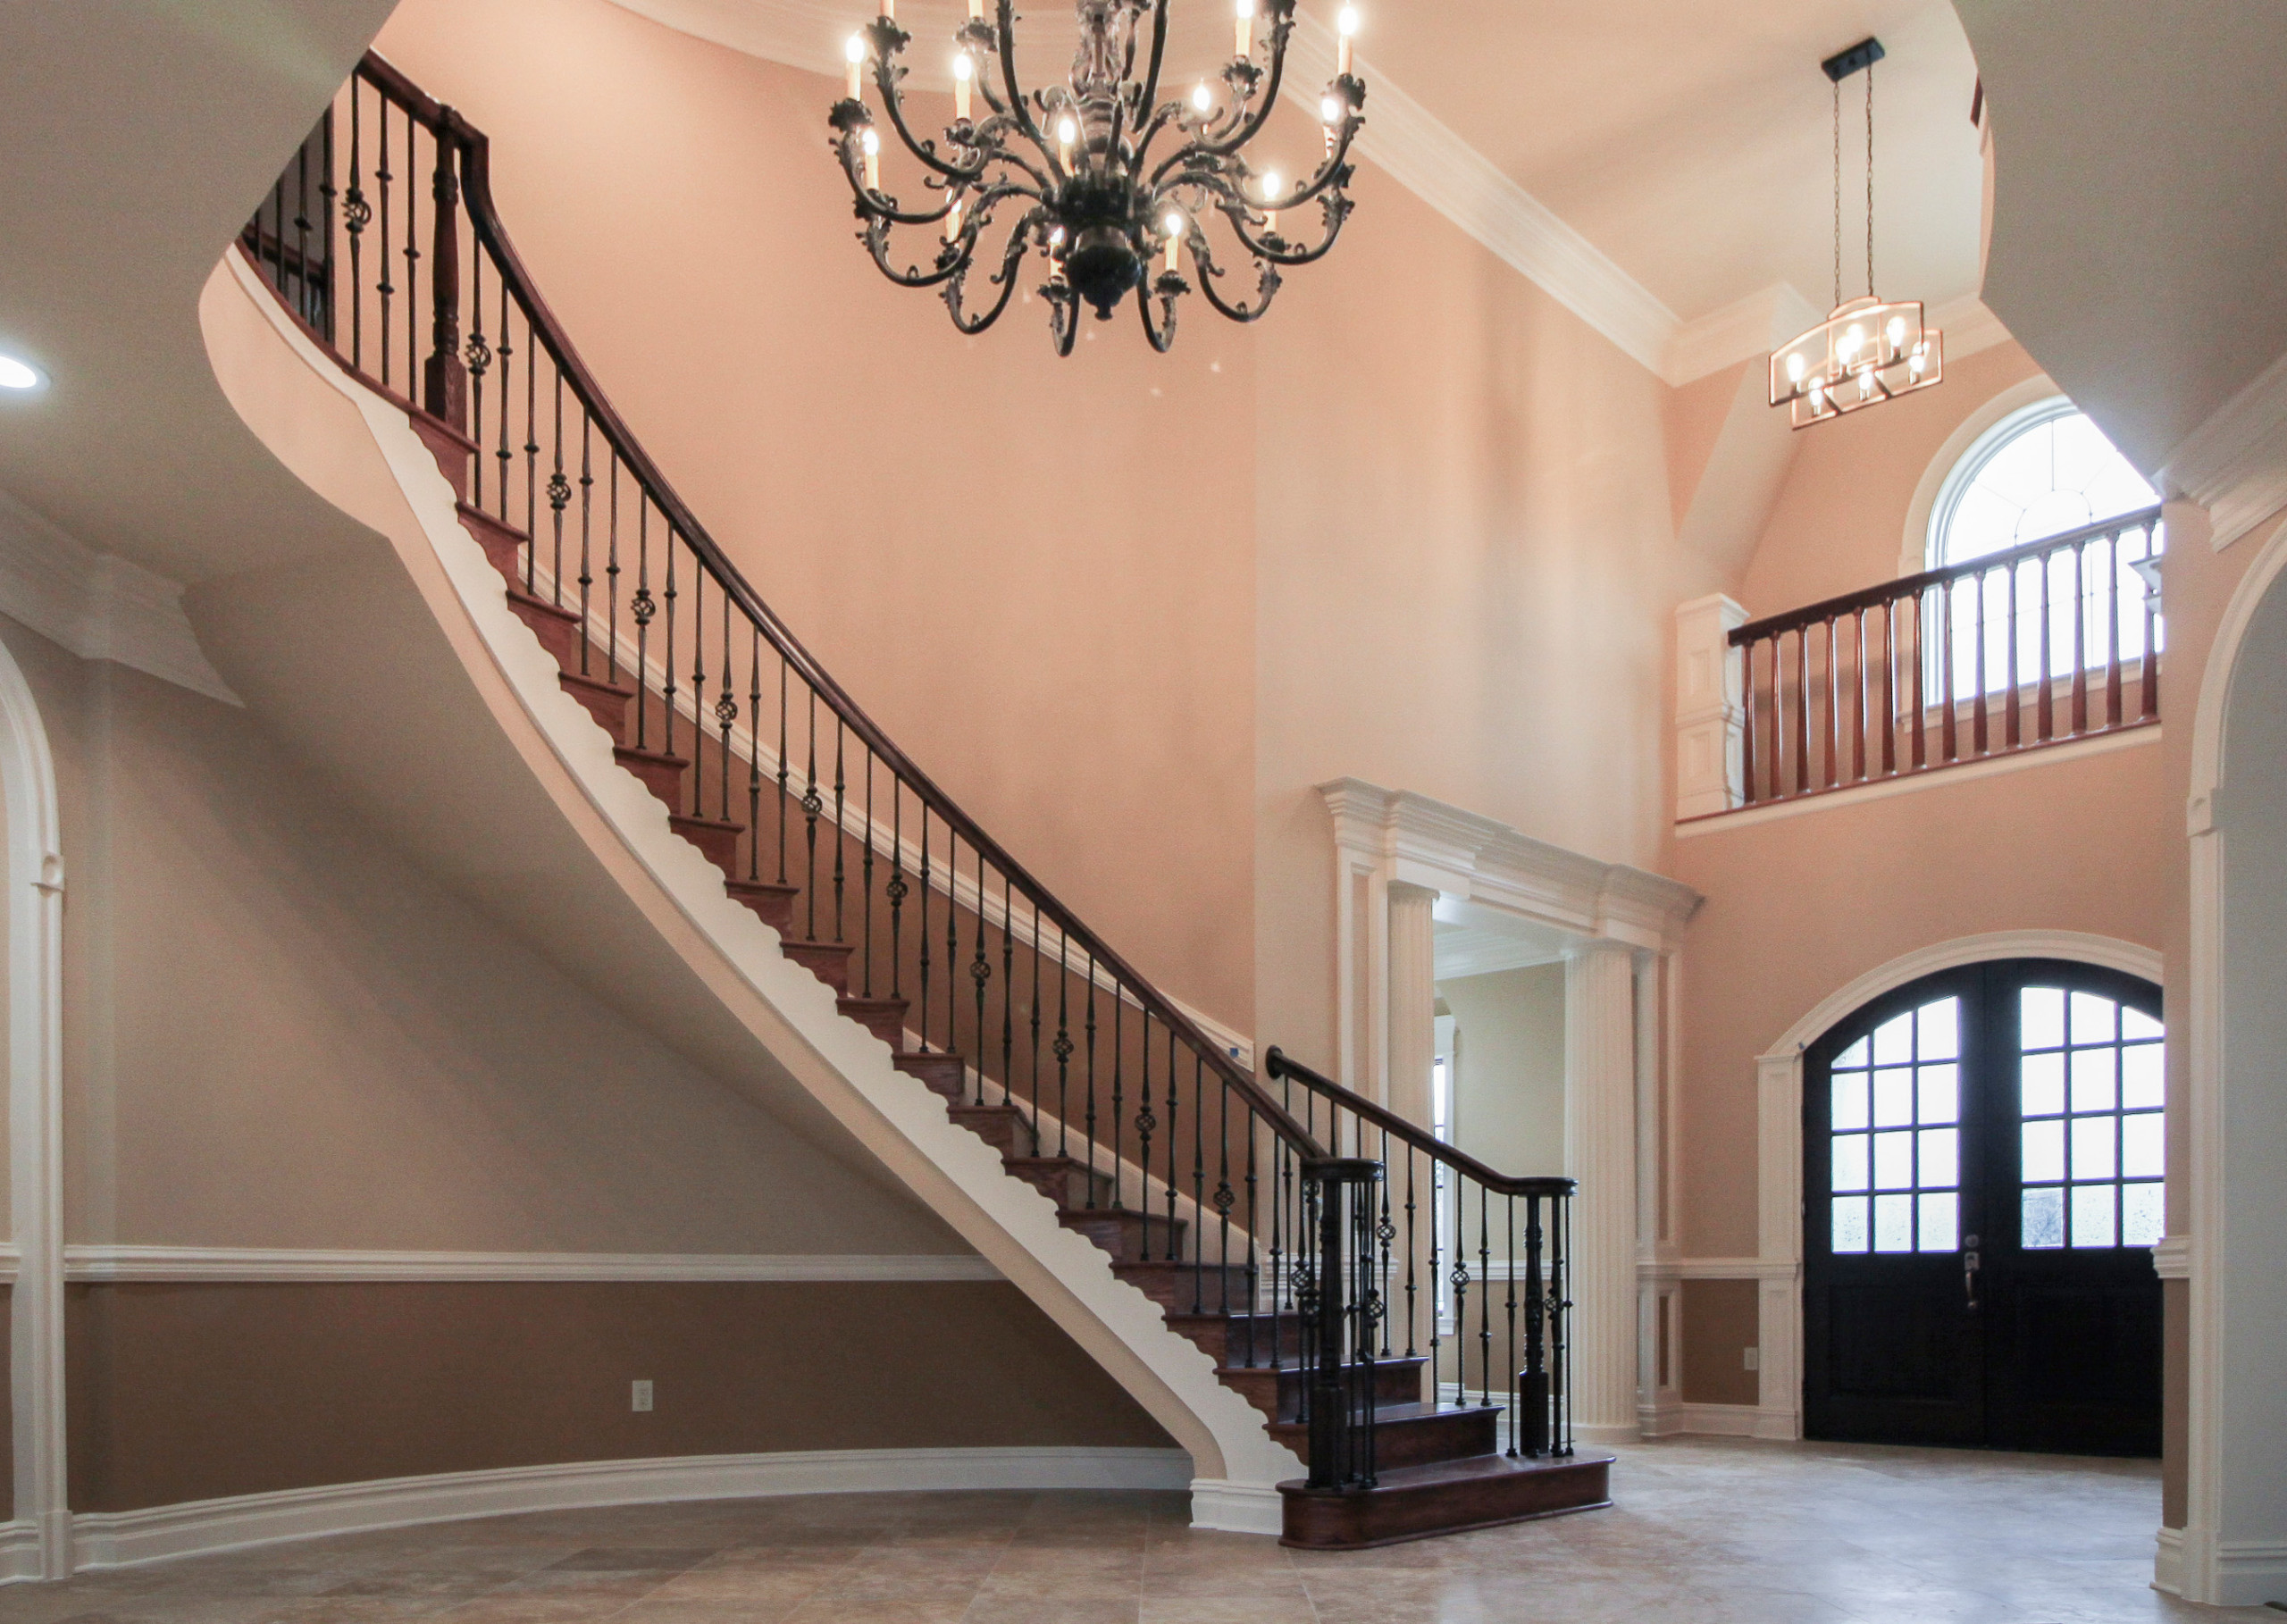 13_Curved Custom Wrought Iron Staircase in Elegant Home, Fairfax VA 22032